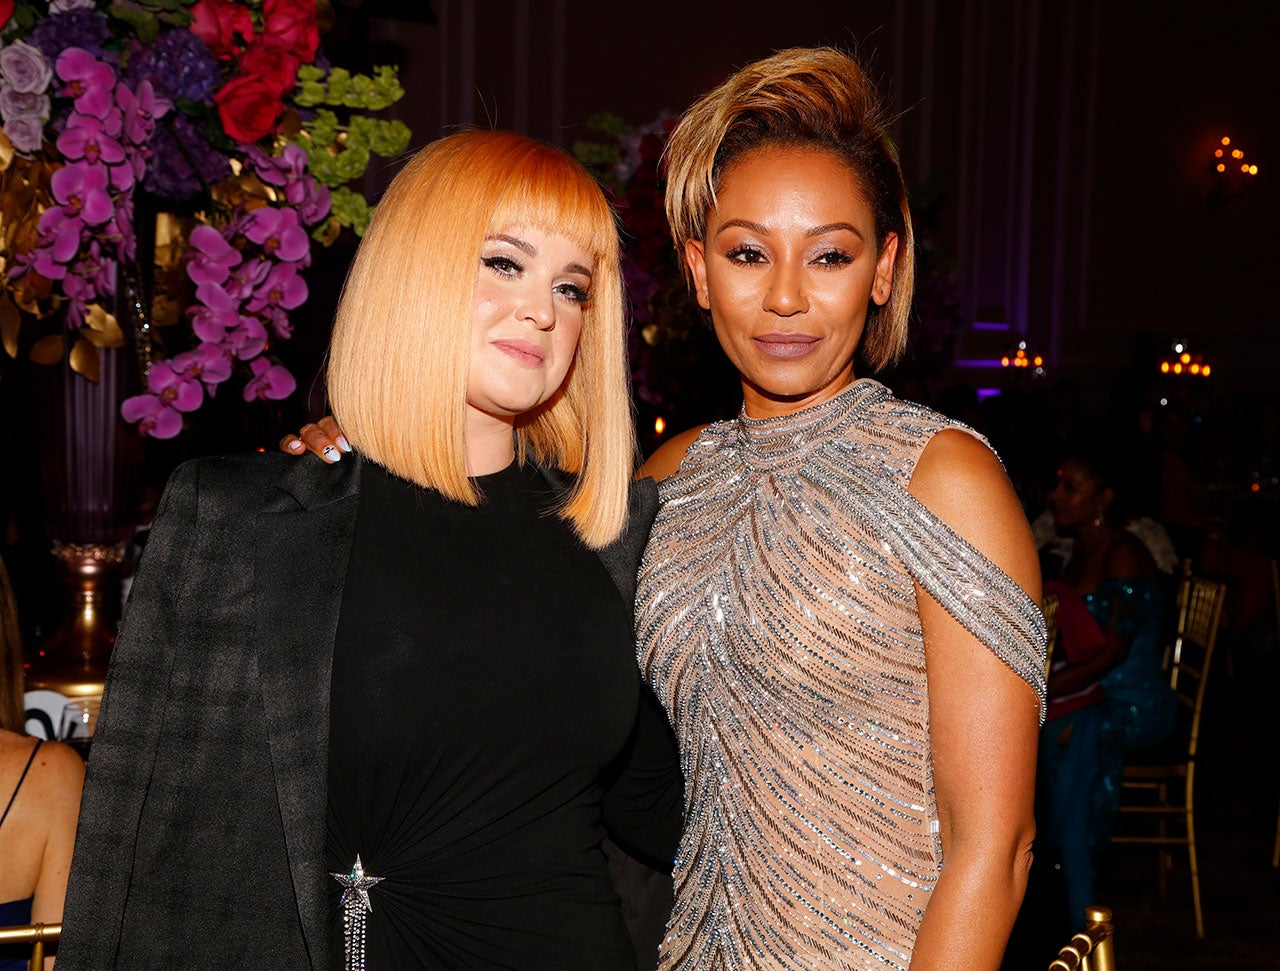 Kelly Osbourne and Mel B